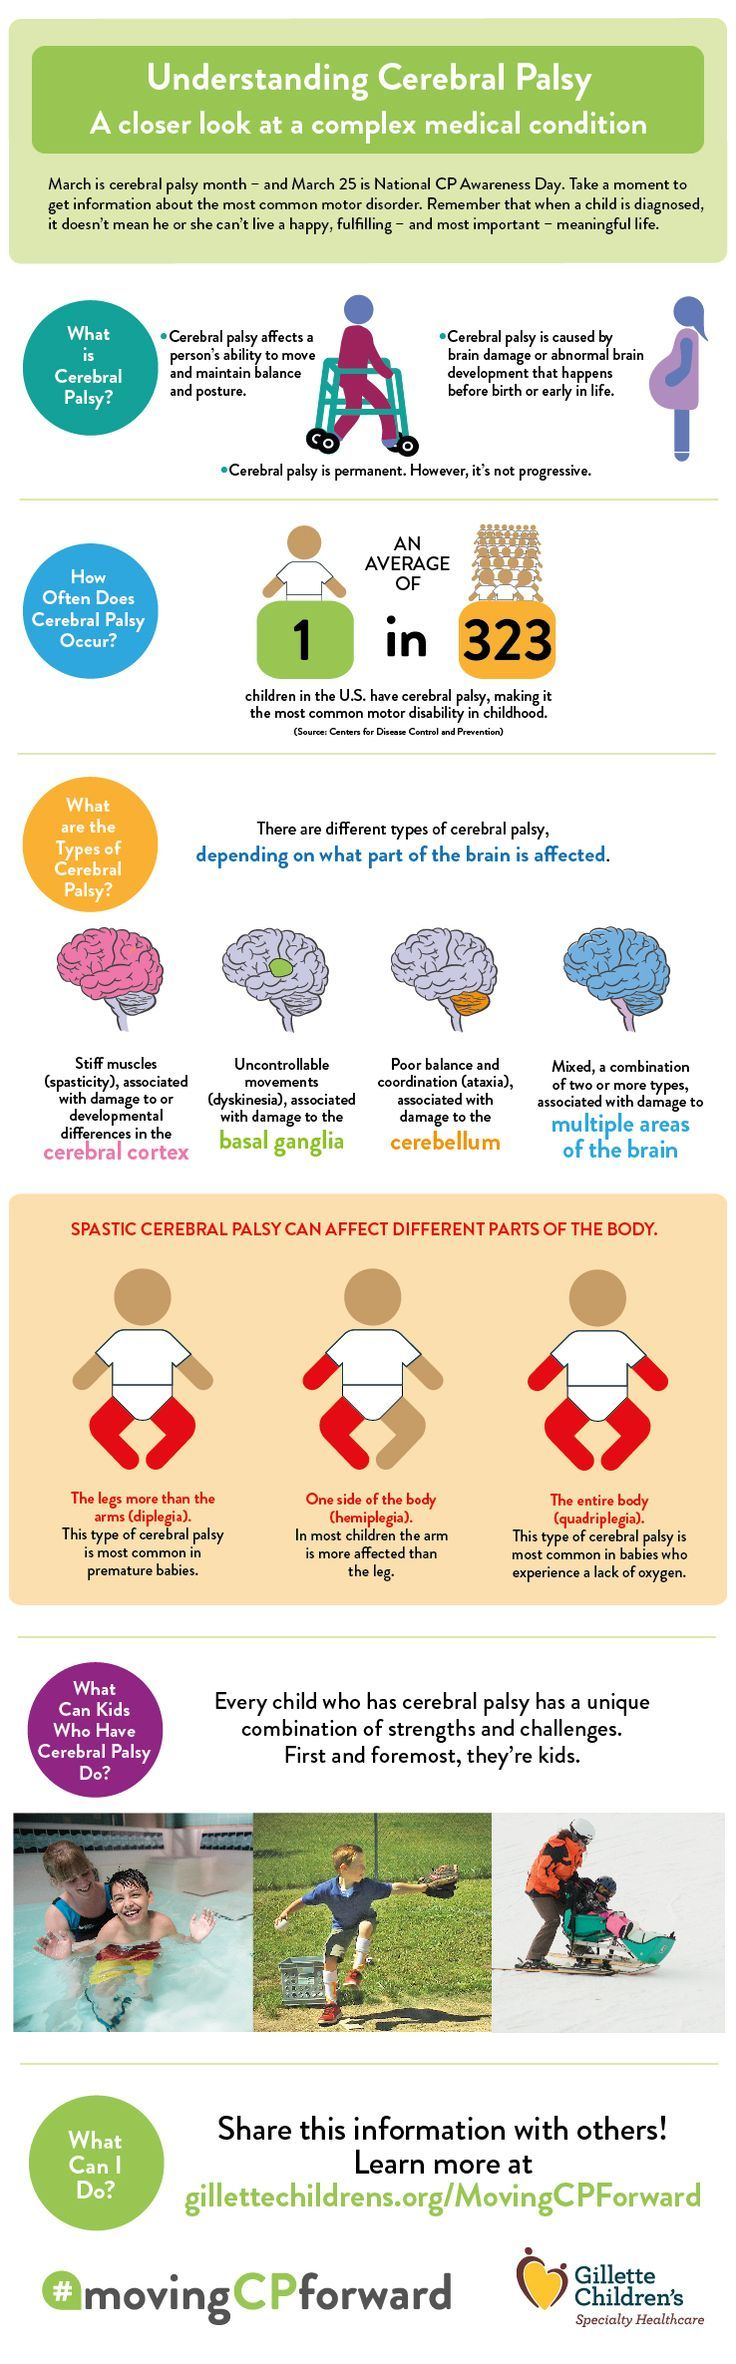 Understanding Cerebral Palsy Infographic by Gillette Children's Specialty Healthcare. #CP